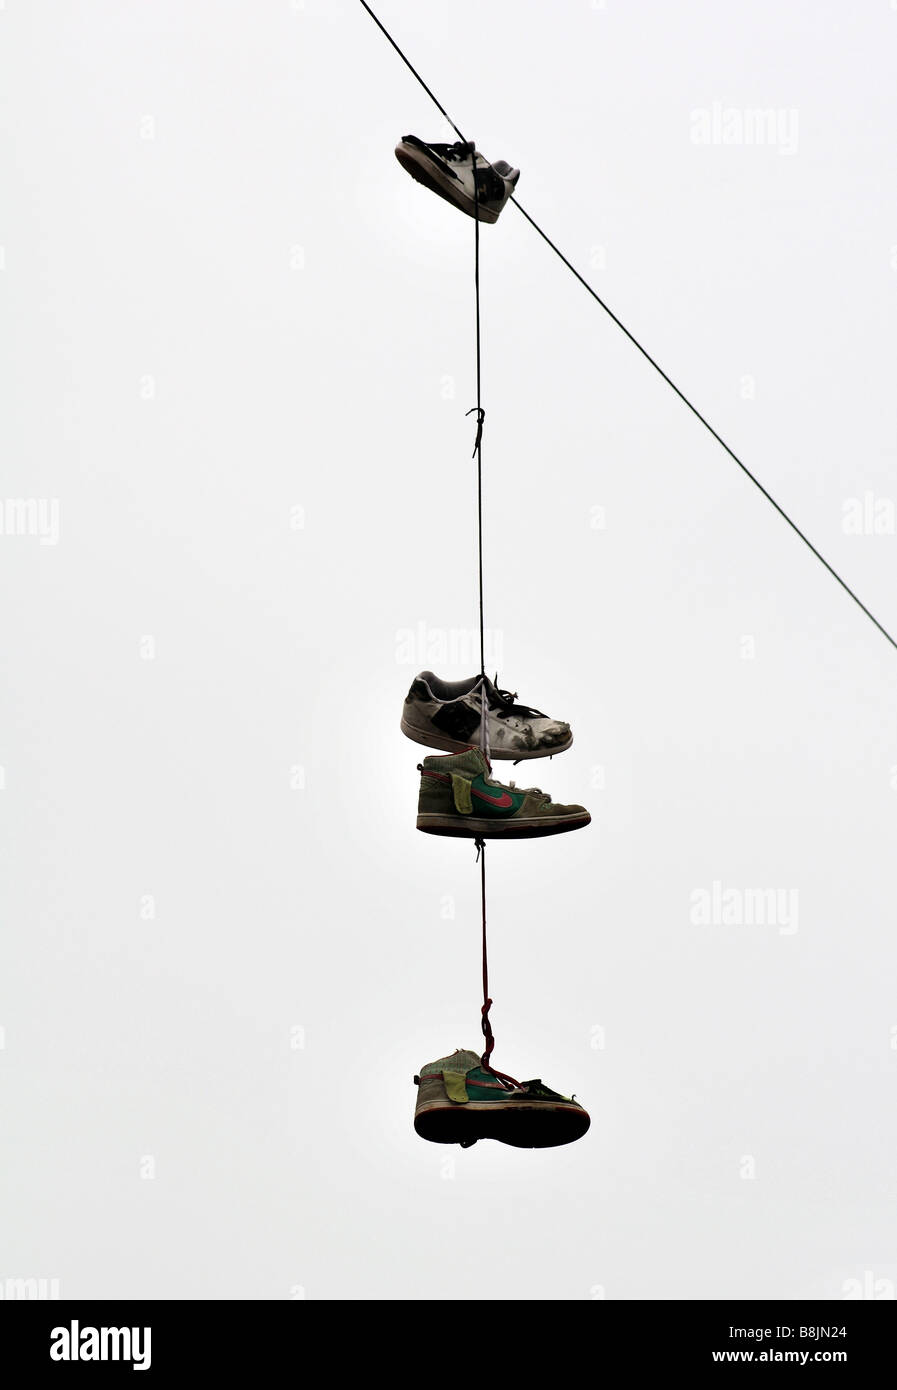 Hanging Pictures On Wire shoes hanging from telephone wire, uk stock photo, royalty free